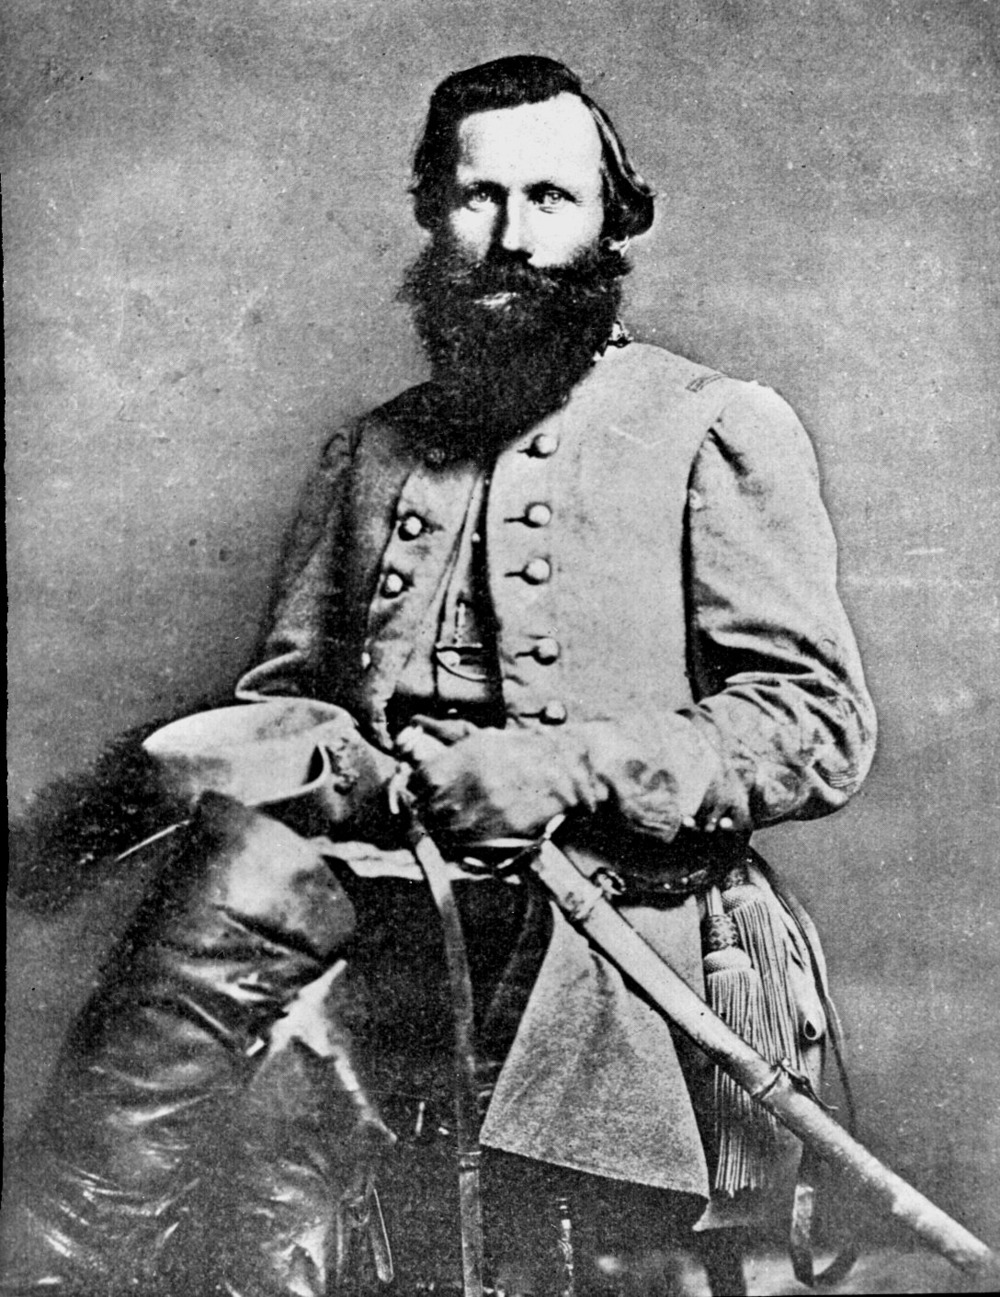 J.E.B. Stuart, Often blamed for the Confederate defeat at Gettysburg